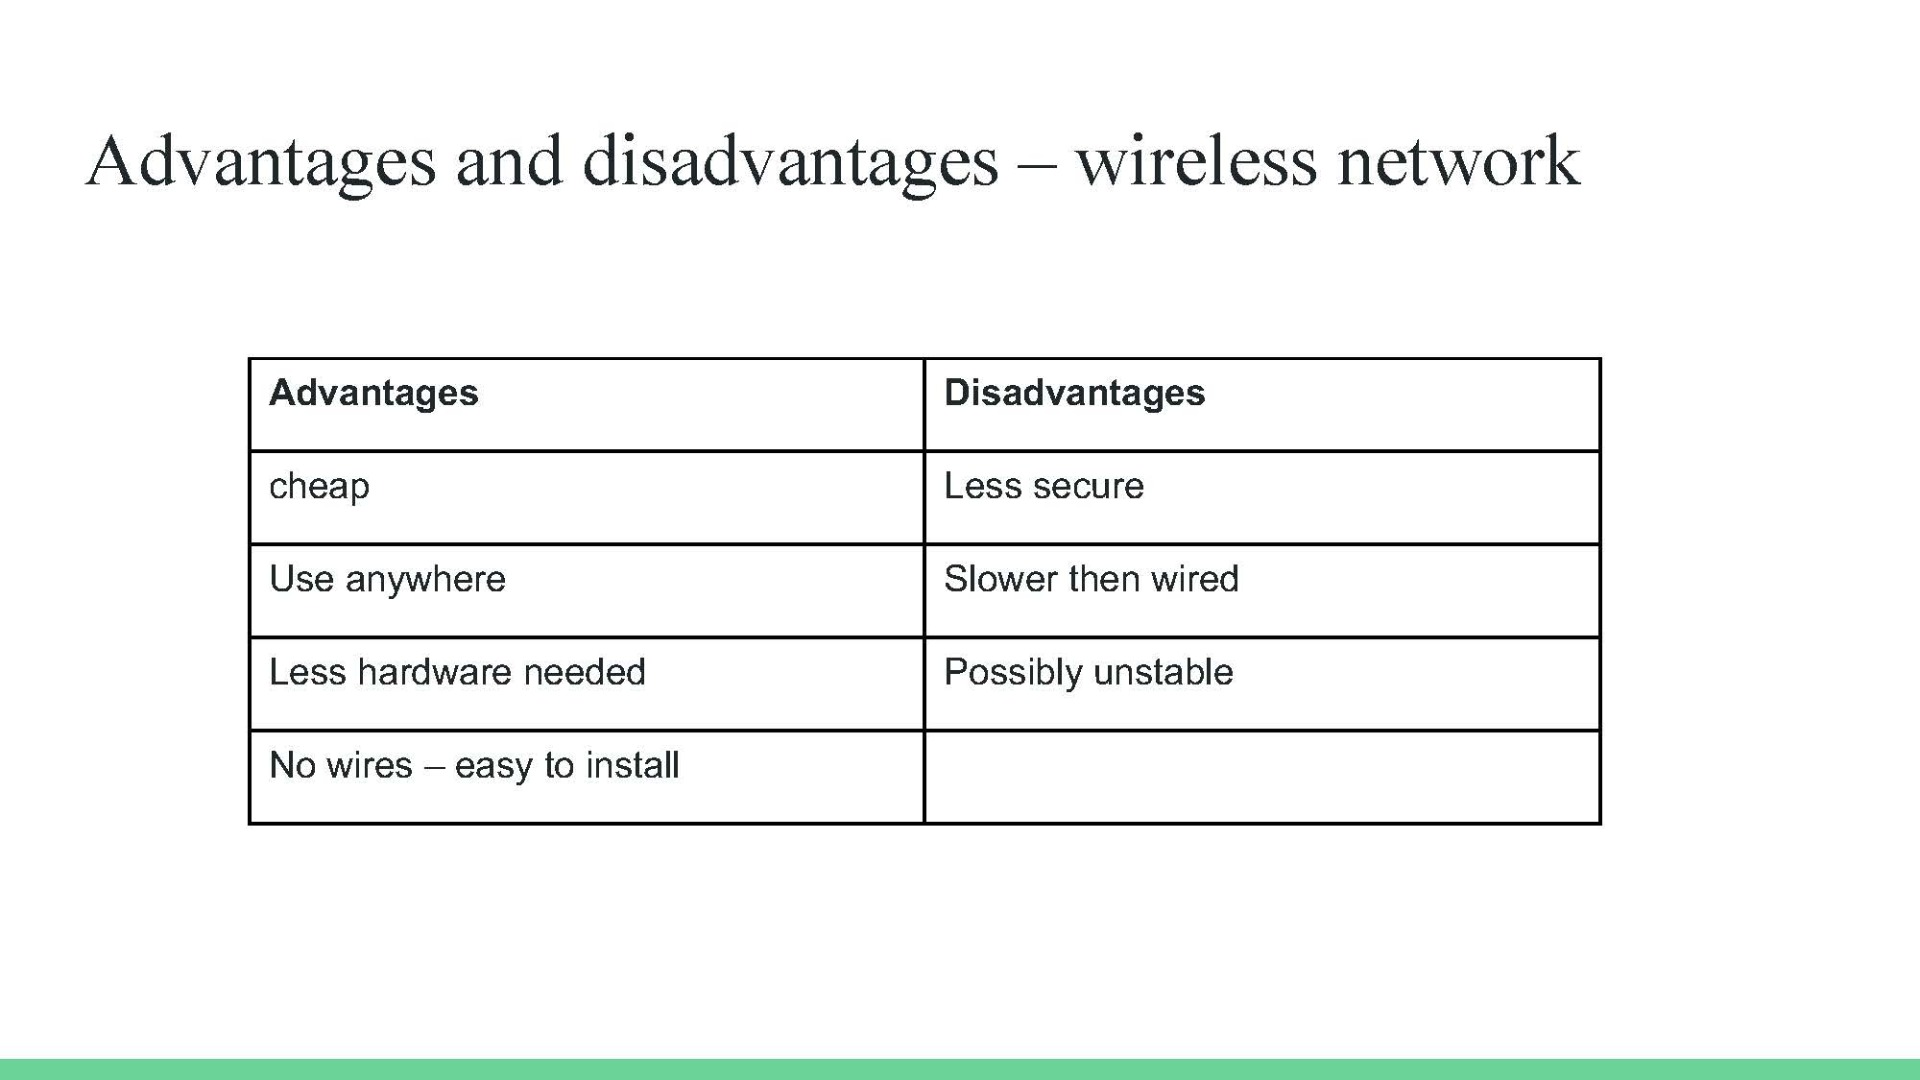 advantages disadvantages of wifi Some disadvantages of wireless communication include a limited amount of bandwidth for communication and breaches of network security wireless transmissions can be seen or heard by others on the network, unless security is set so that only registered devices within the network are able to receive data.